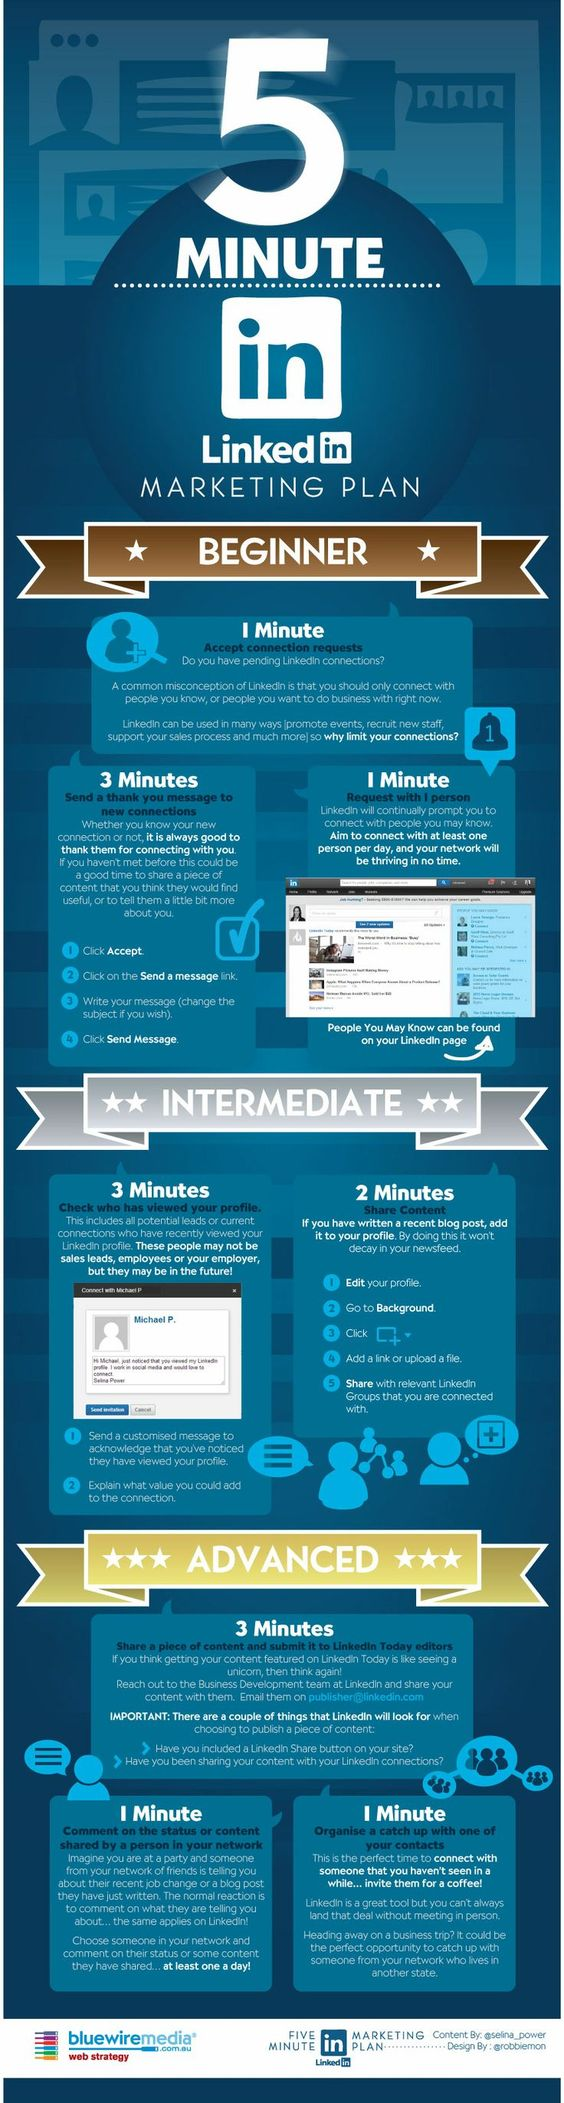 5 minute LinkedIn marketing plan that actually yields results! An infographic guide.